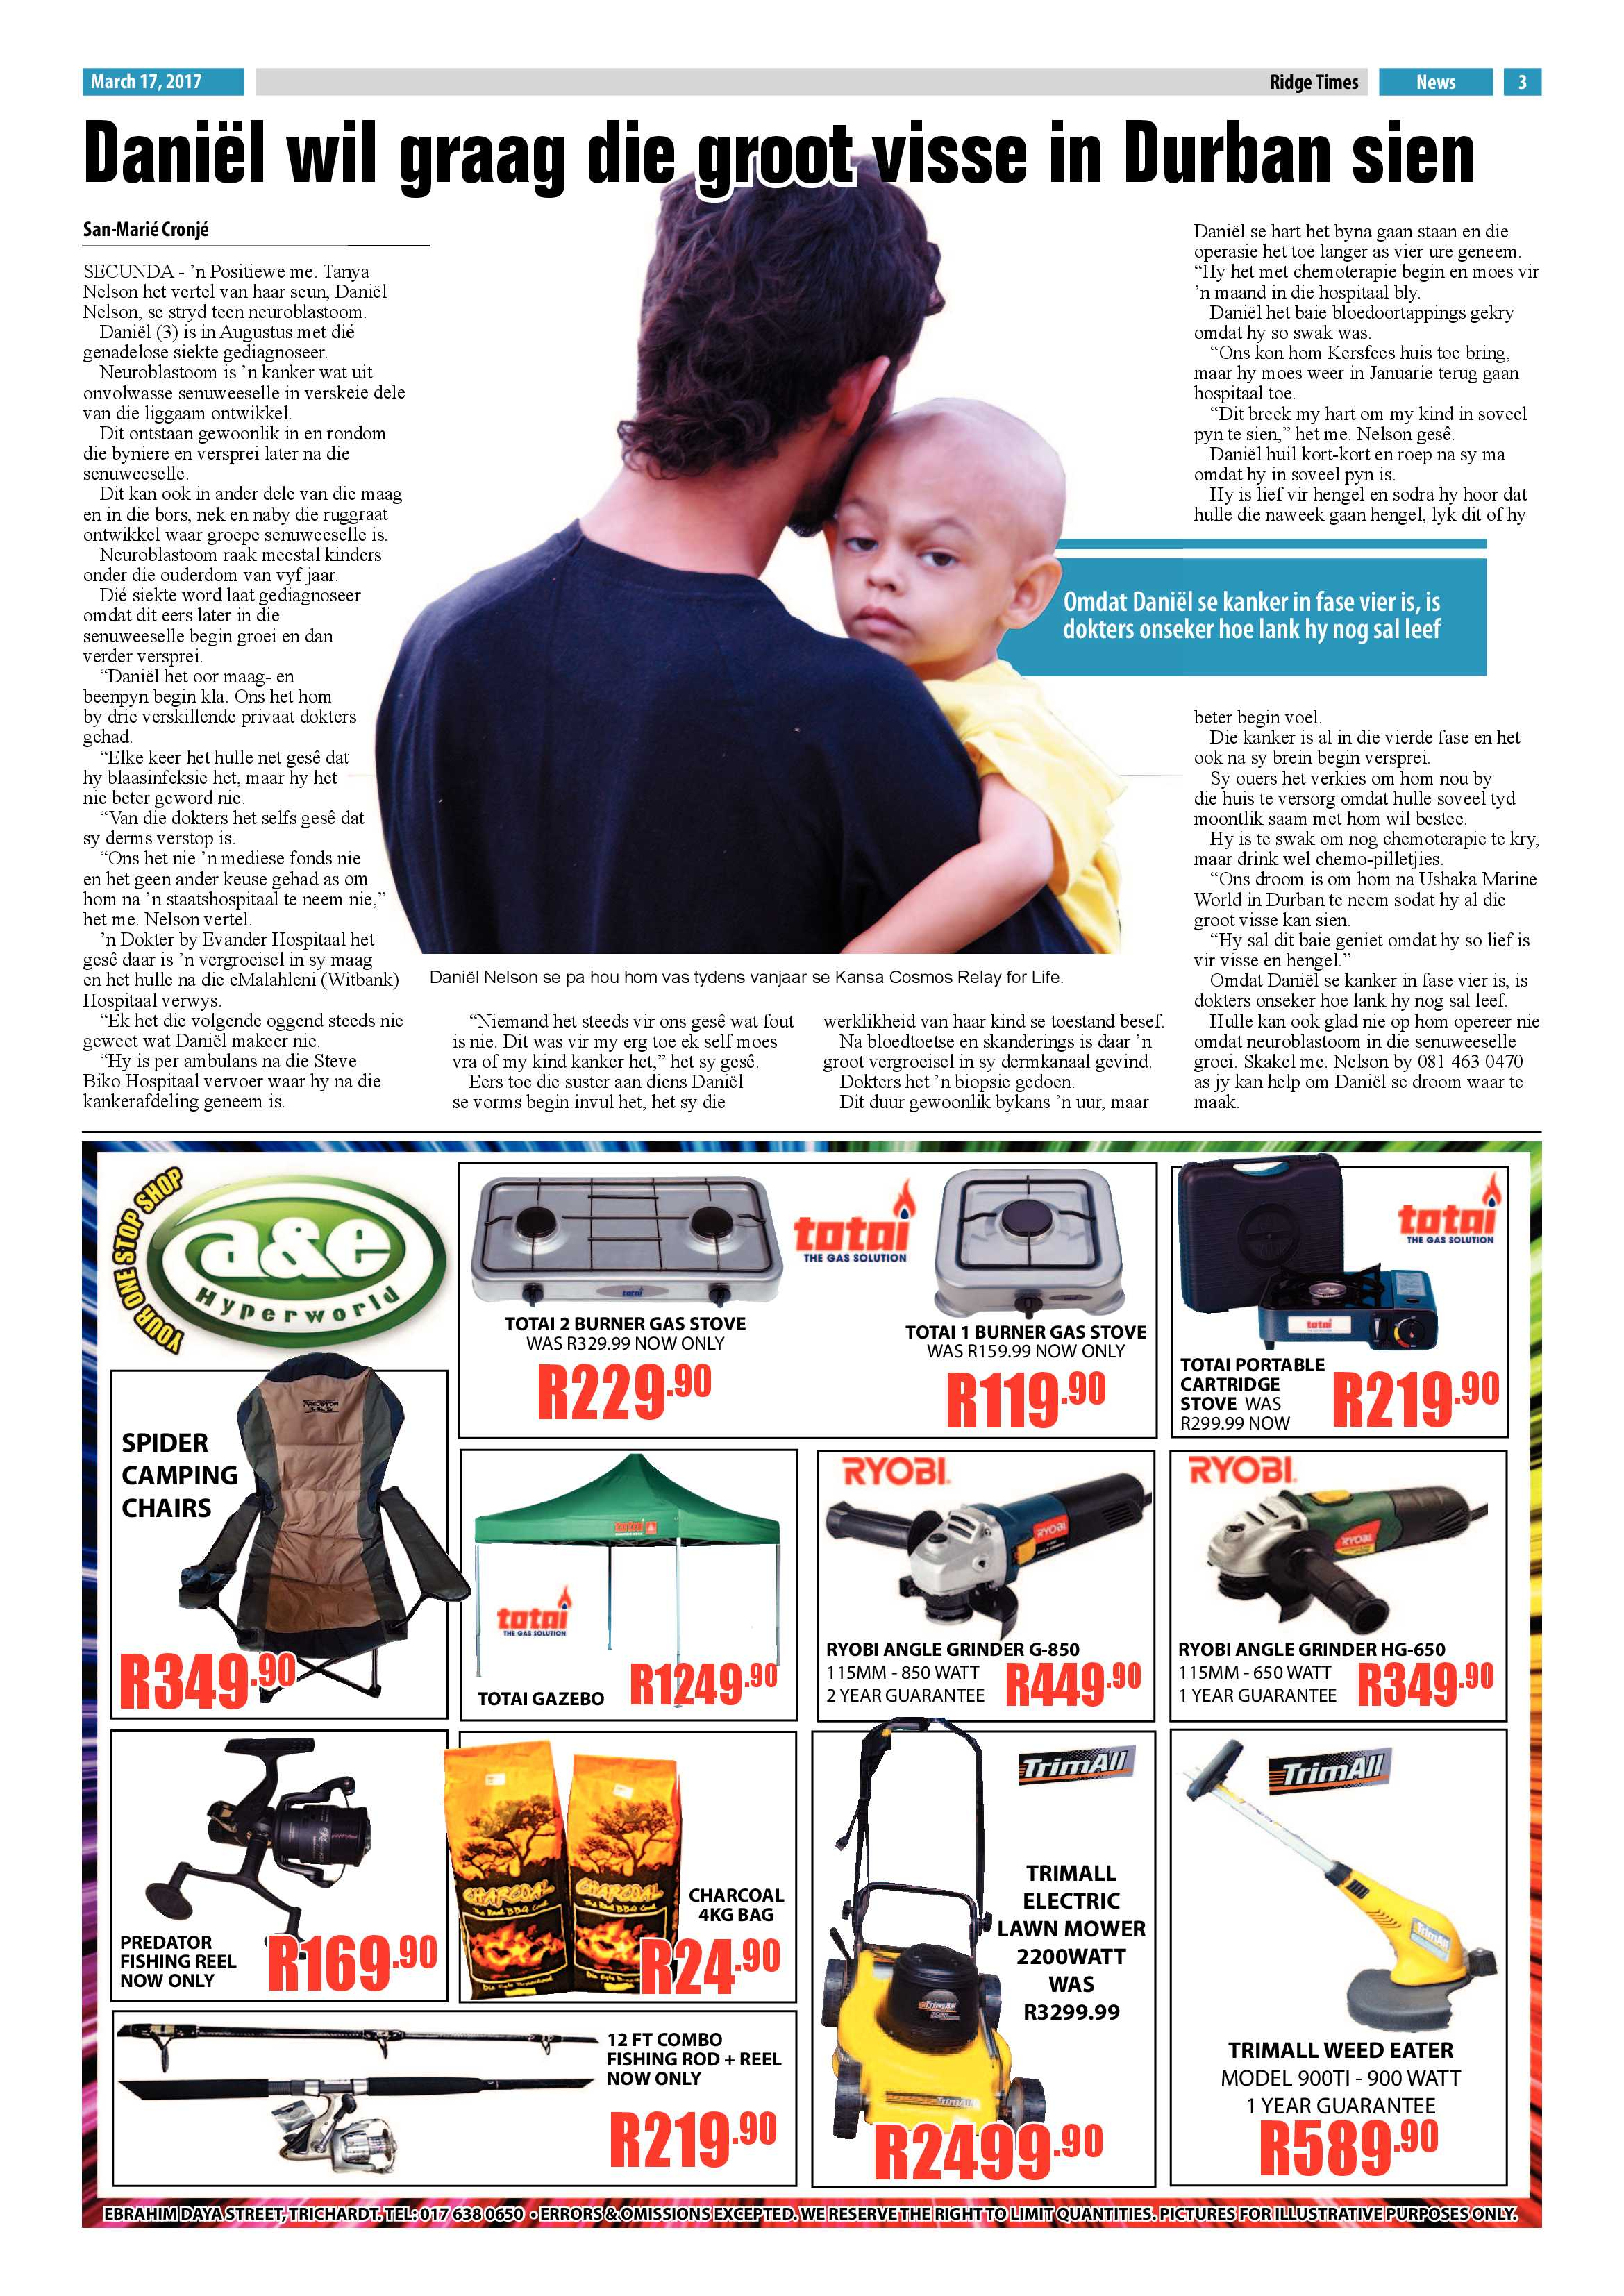 ridge-times-17-march-epapers-page-3